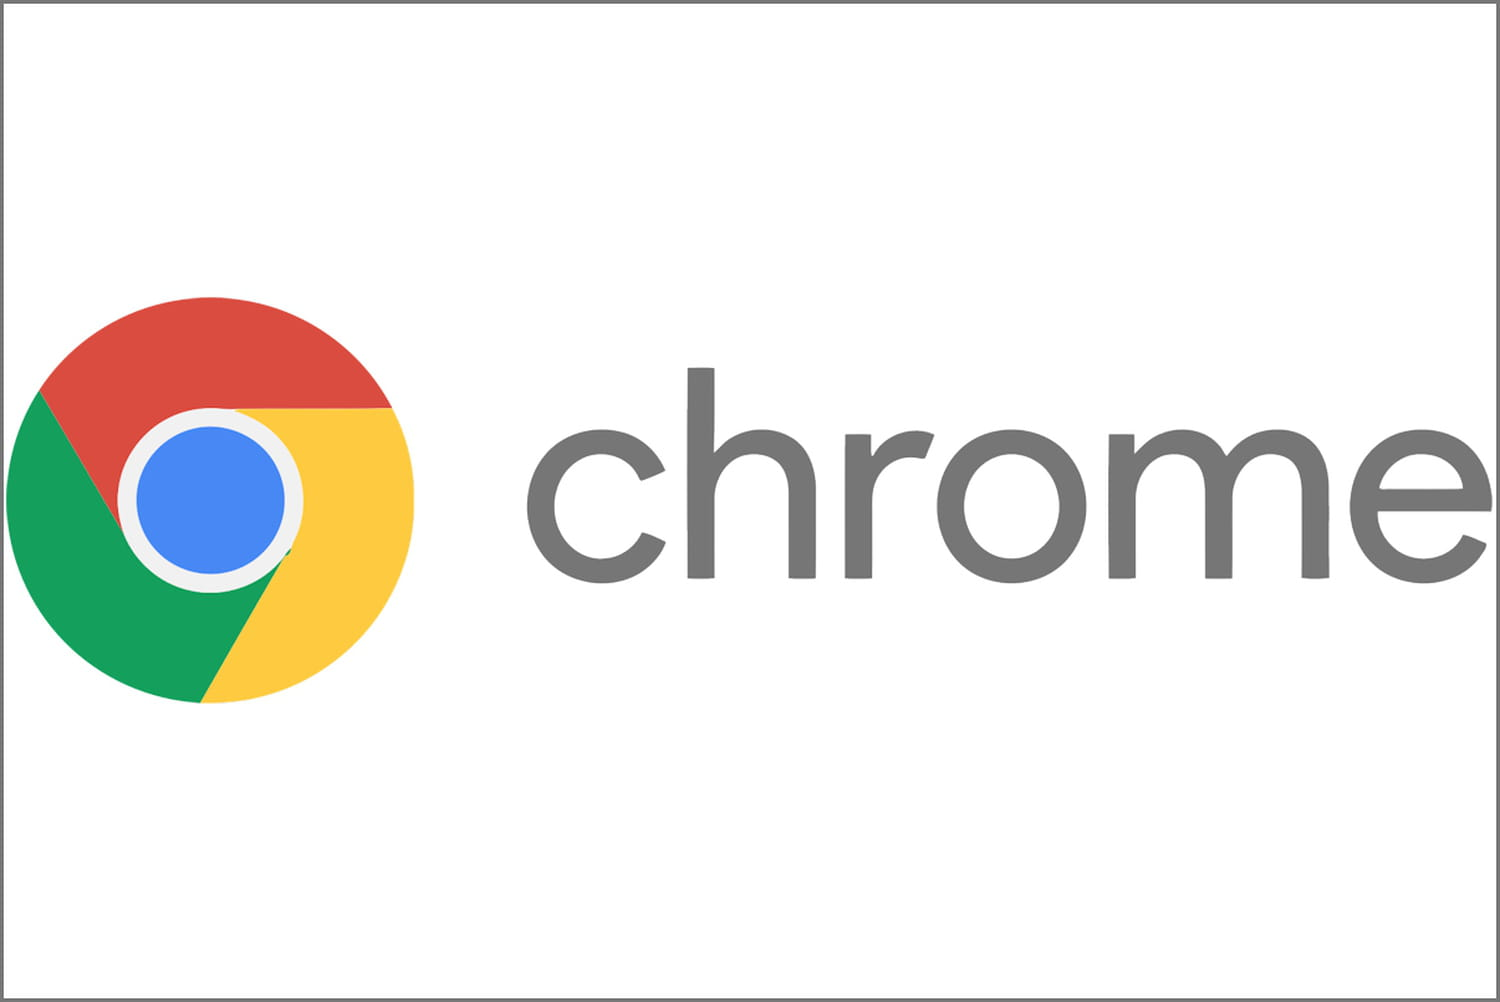 Chrome: résoudre l'erreur Uncaught (in promise) DOMException: play() failed because the user didn't interact with the document first.